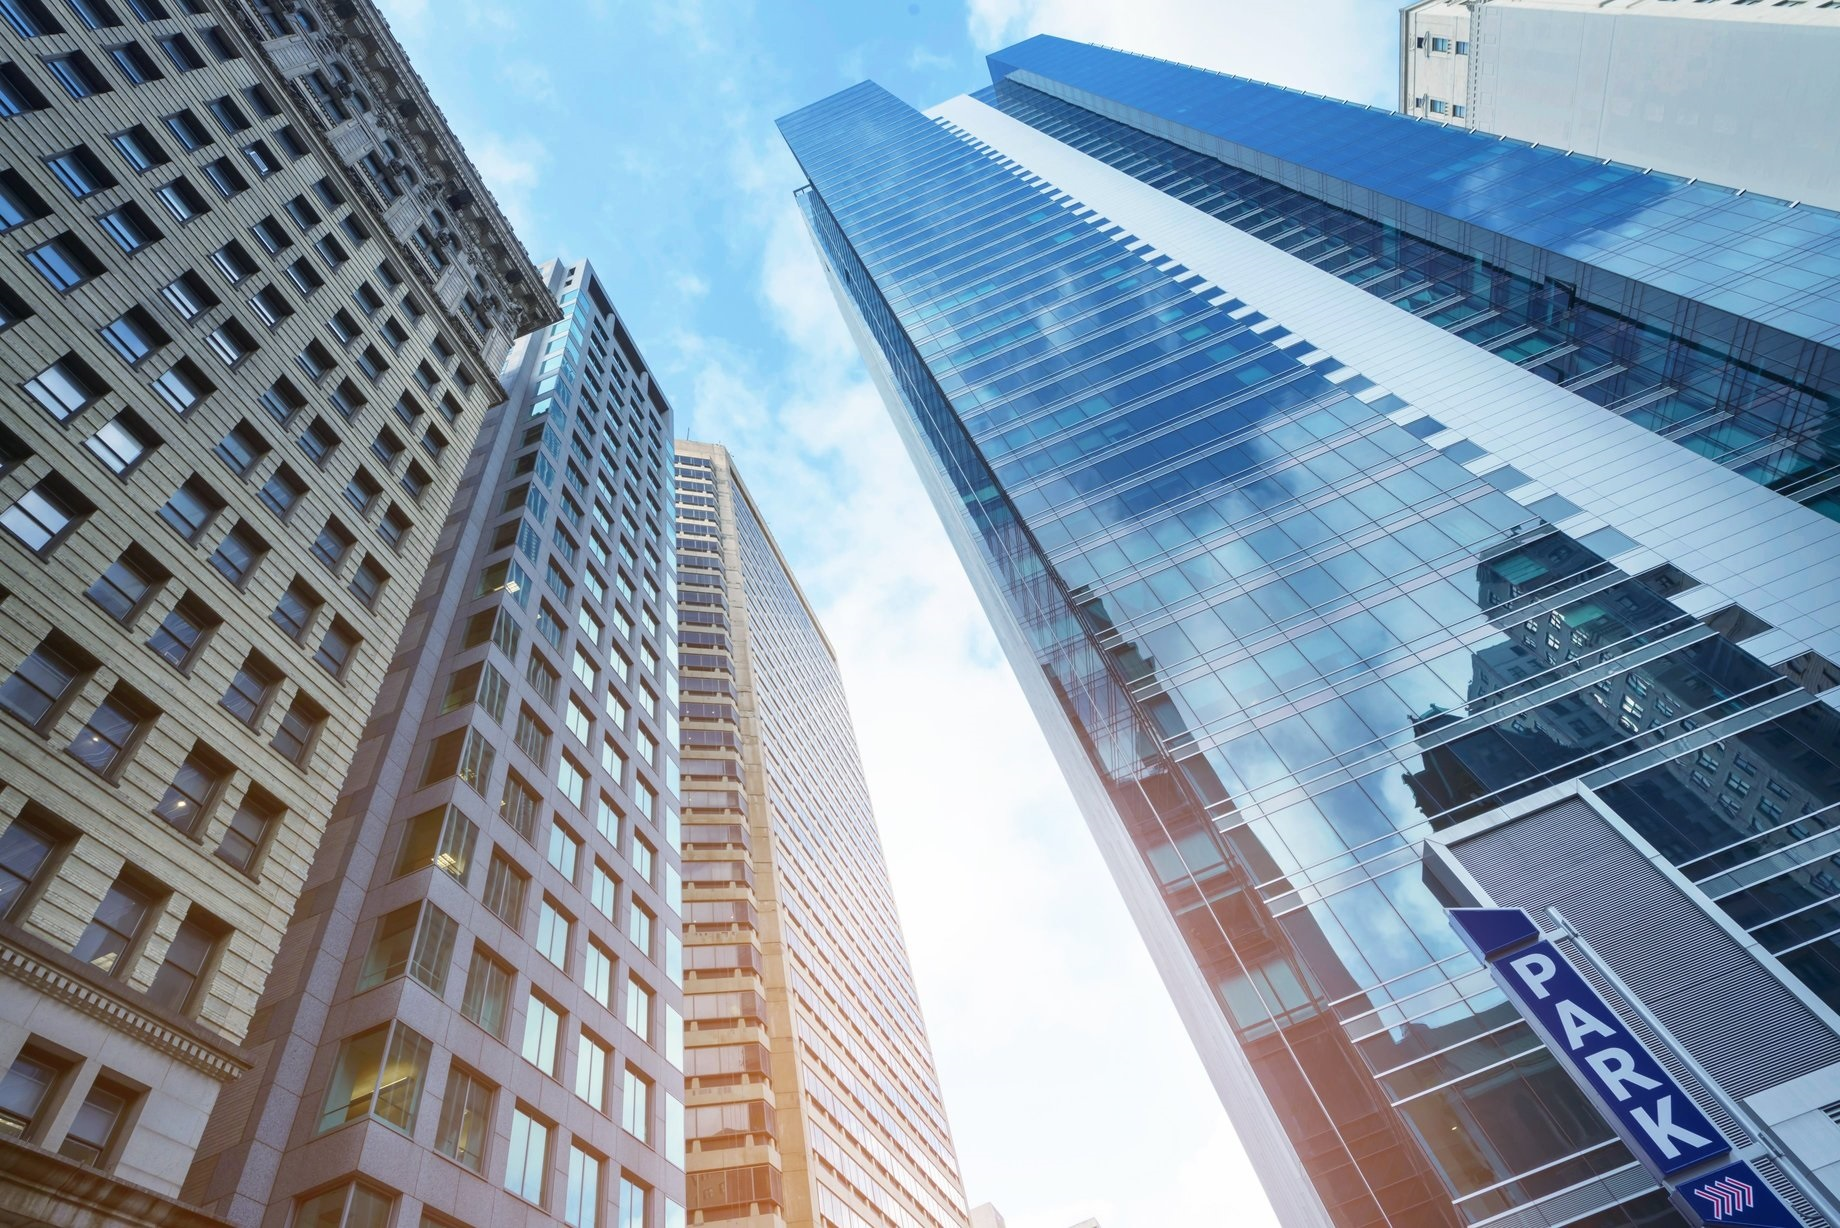 Thinking of Buying Commercial Property? 3 Things to Know